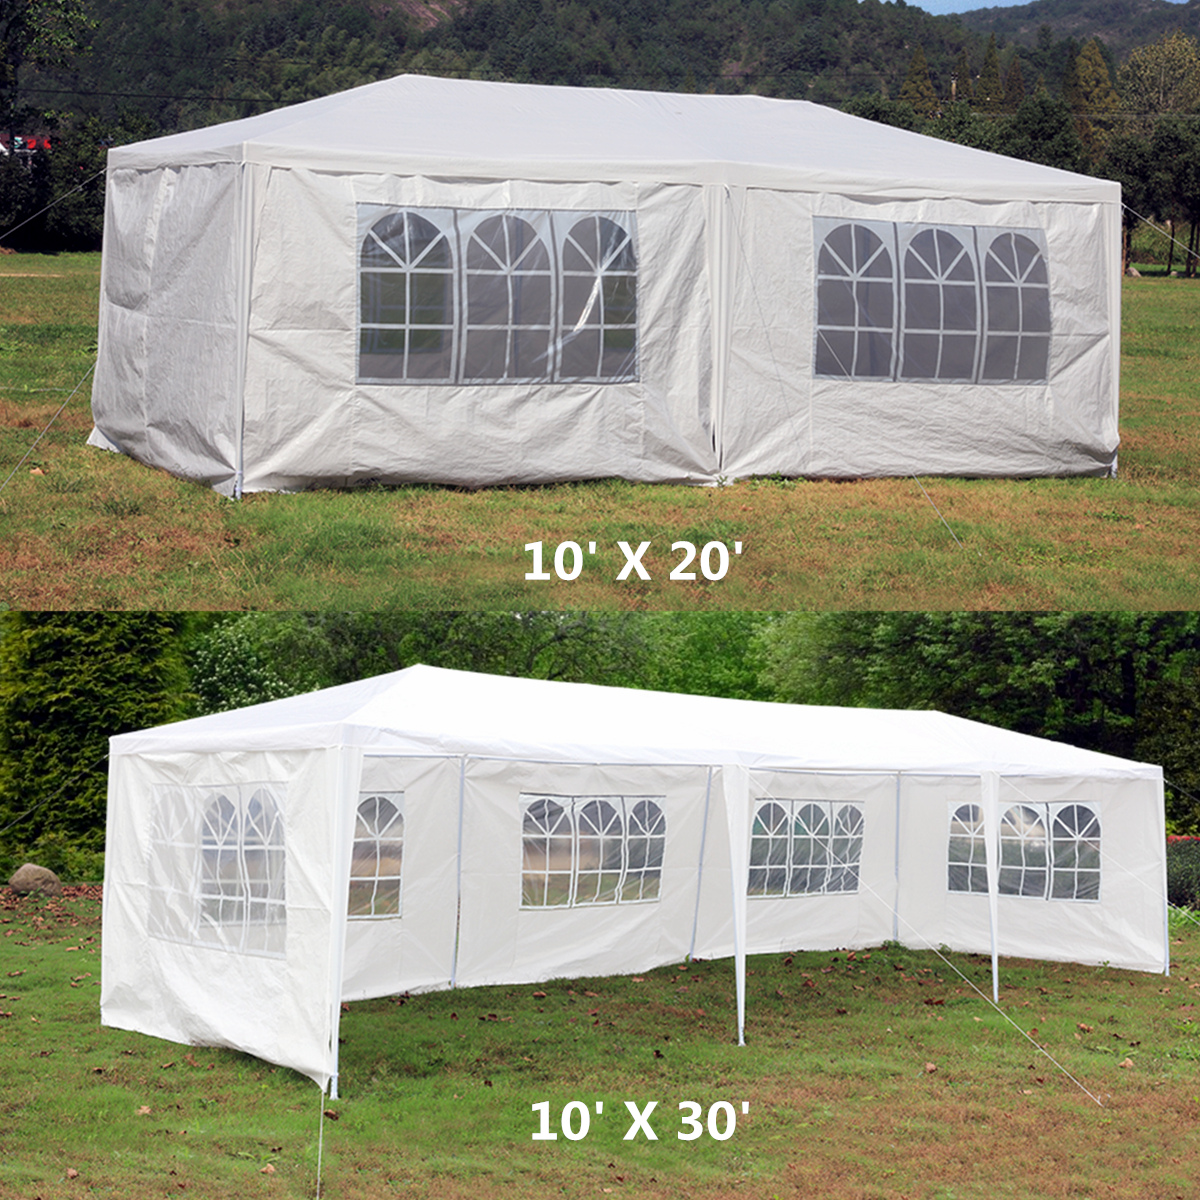 Details about 10u0027x20u0027/30u0027 Wedding Tent Party Garden Outdoor Canopy Heavy Duty Pavilion Event & 10u0027x20u0027/30u0027 Wedding Tent Party Garden Outdoor Canopy Heavy Duty ...